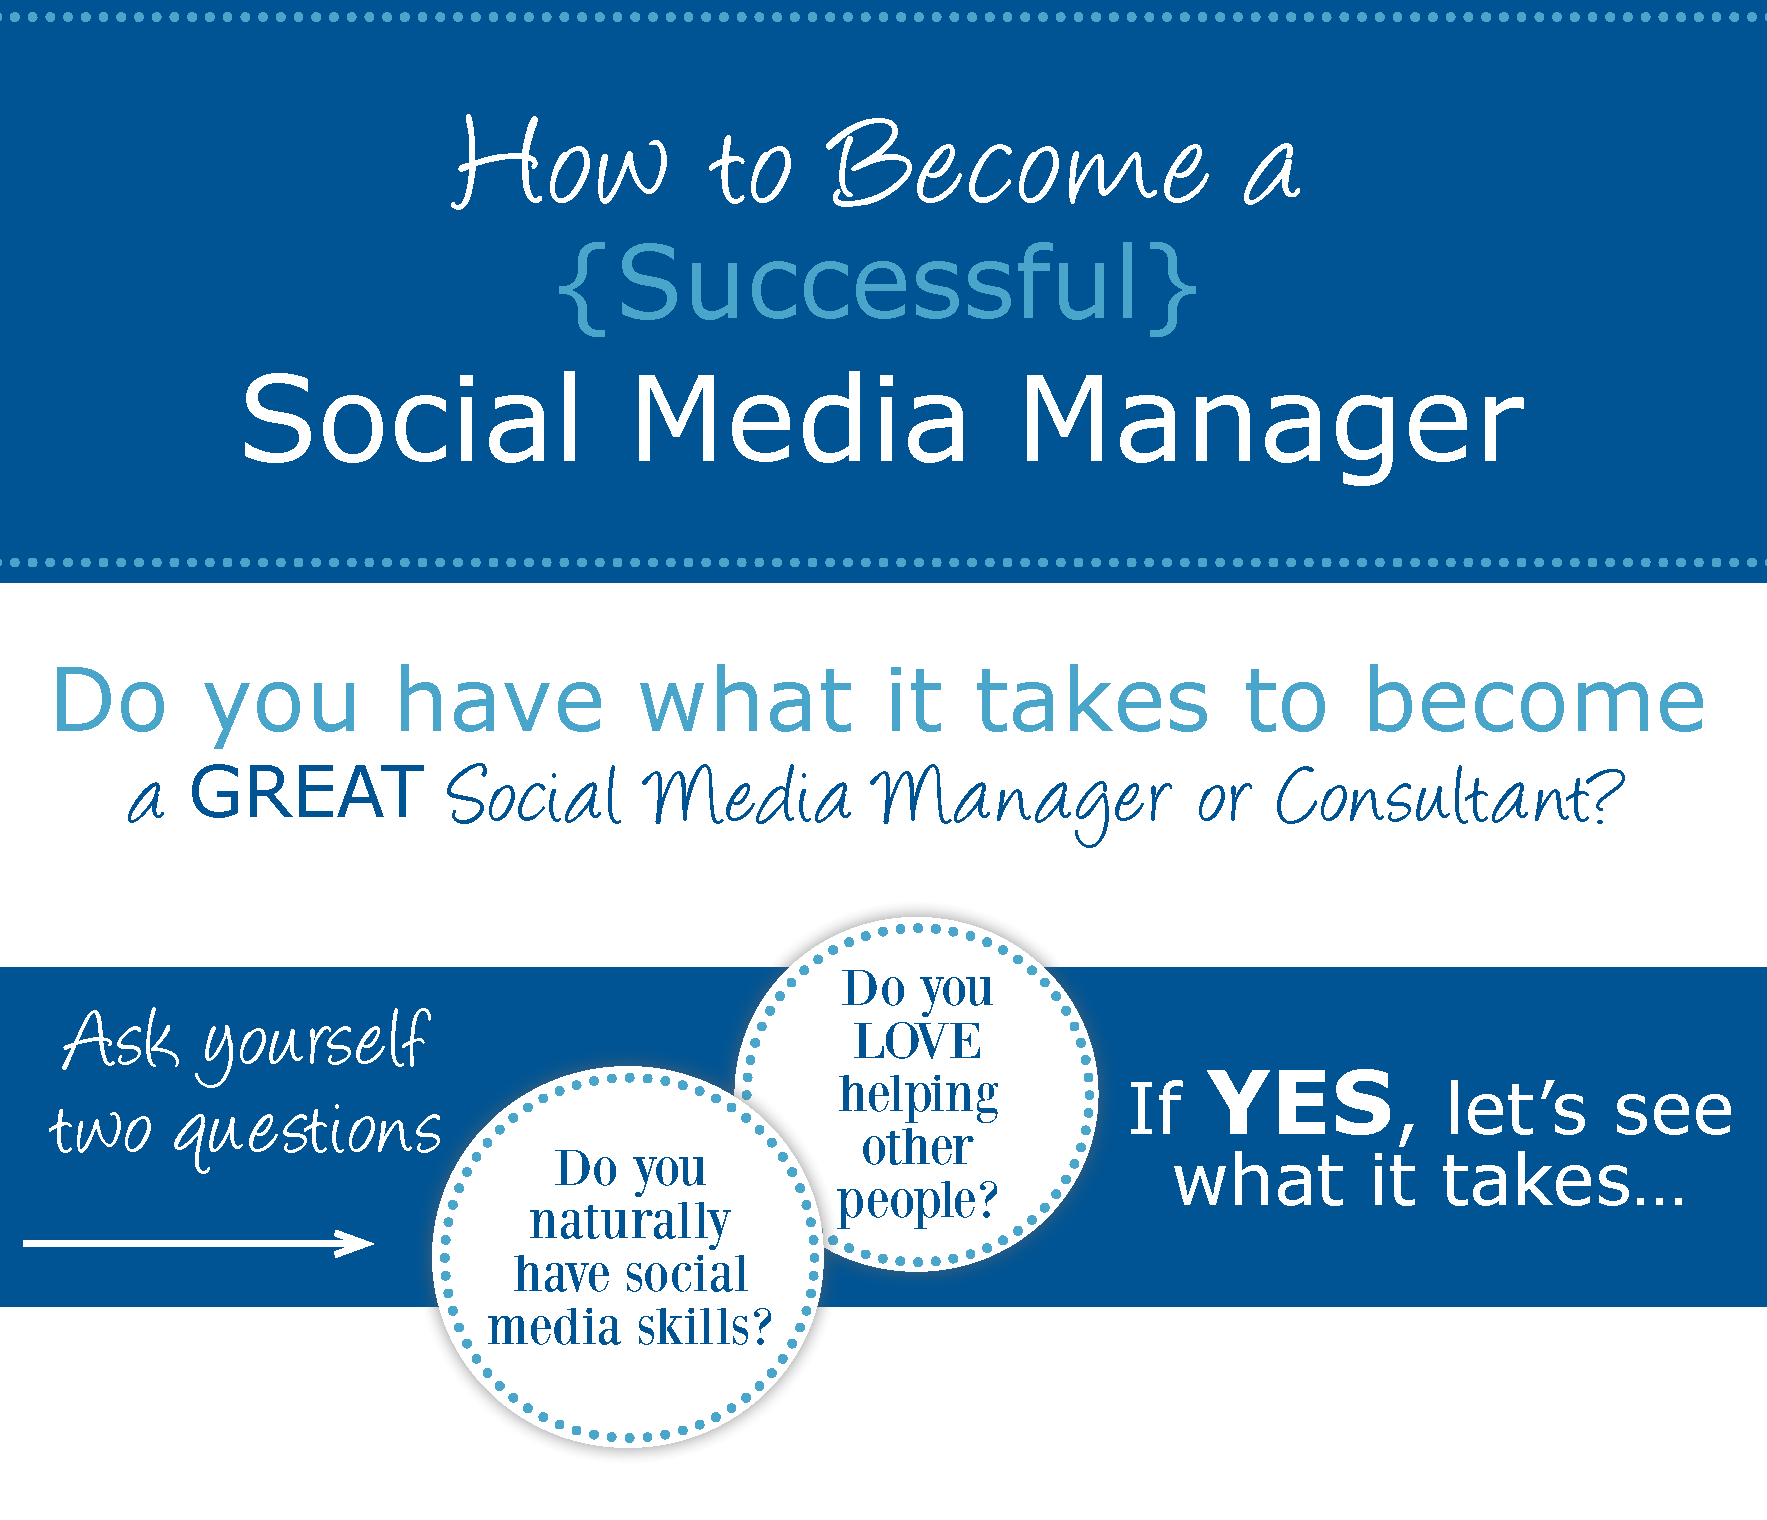 How to become a successful social media manager ccuart Image collections